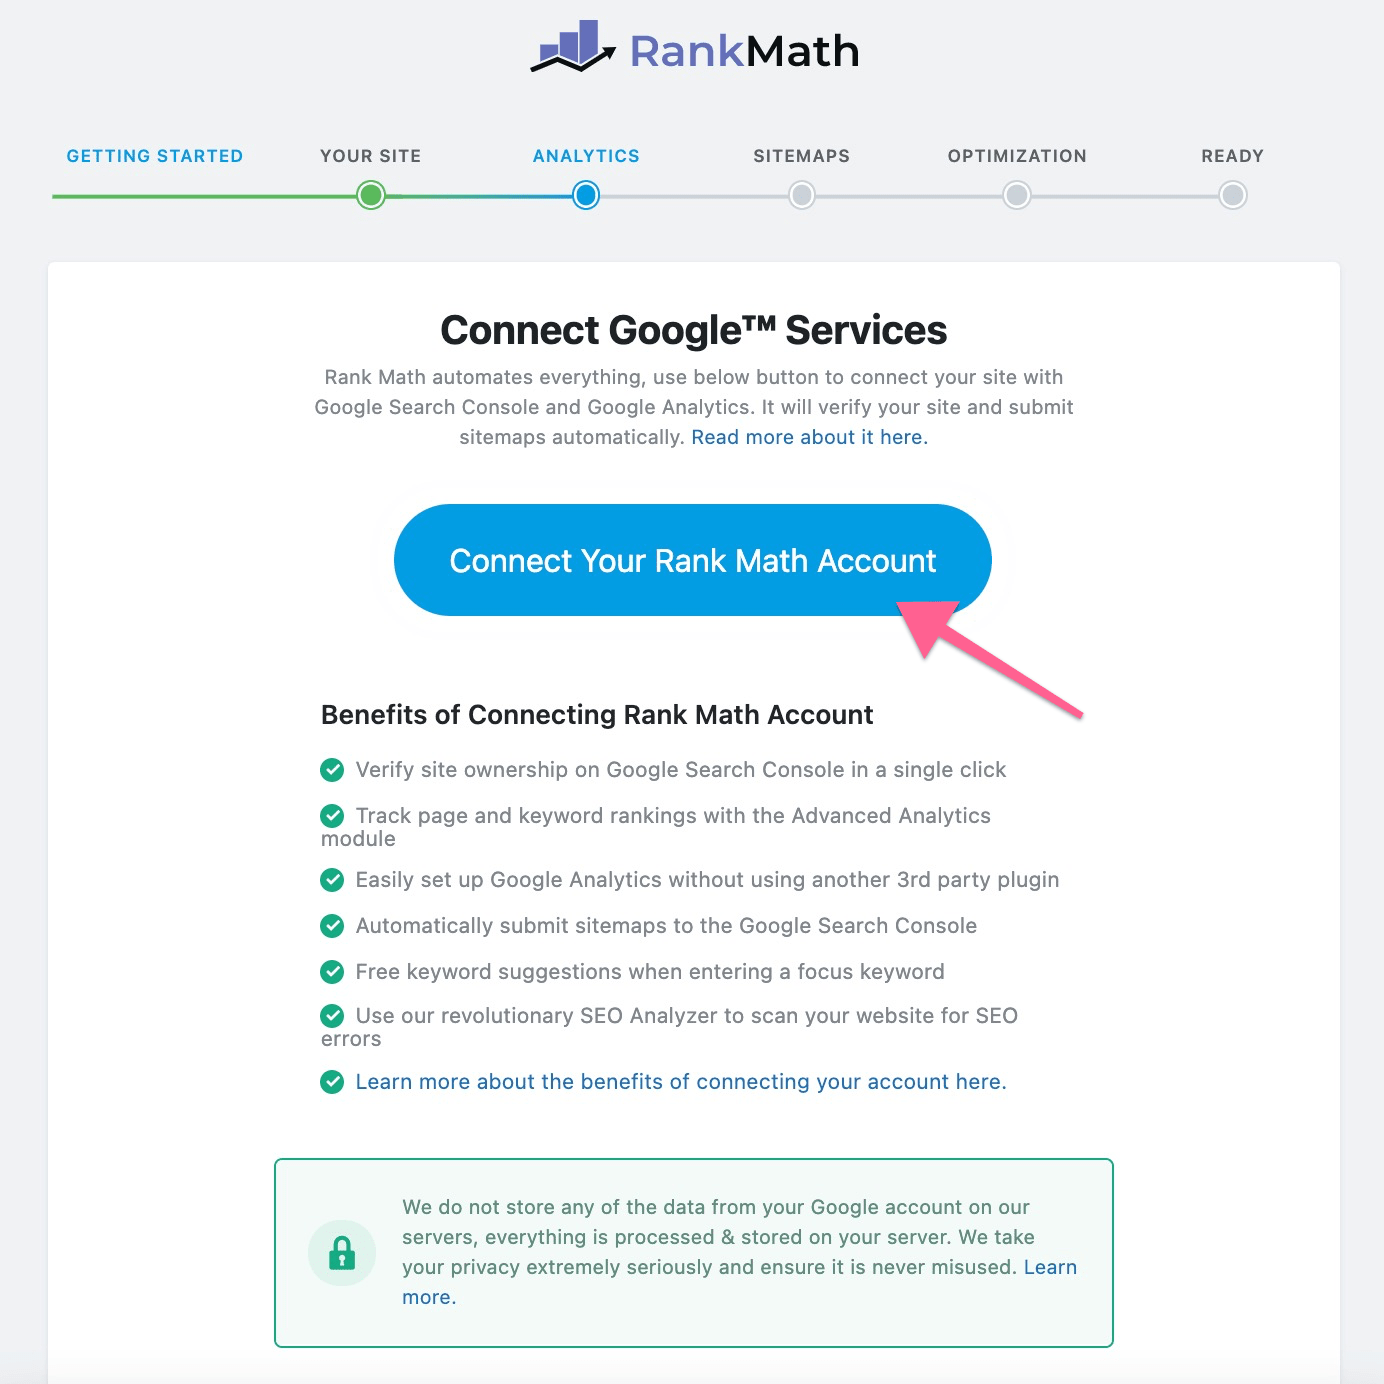 Connect Google Services with RankMath